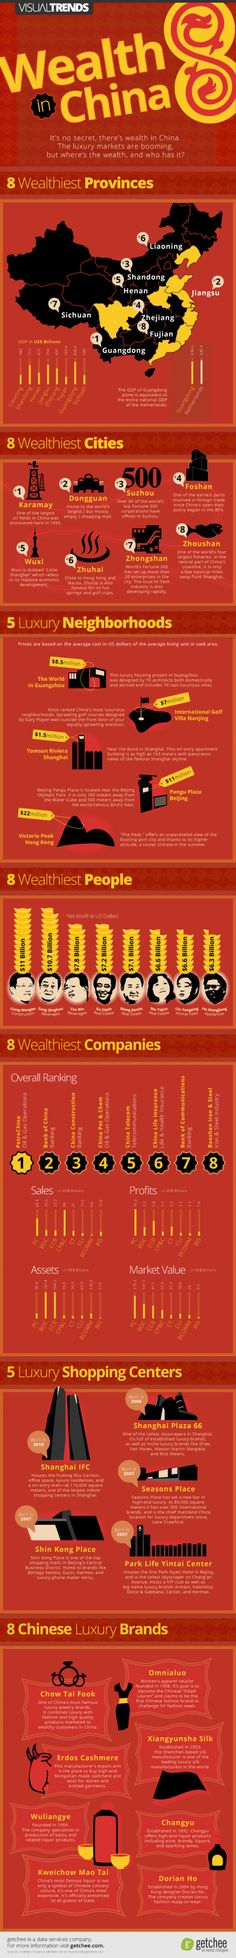 Wealth in China